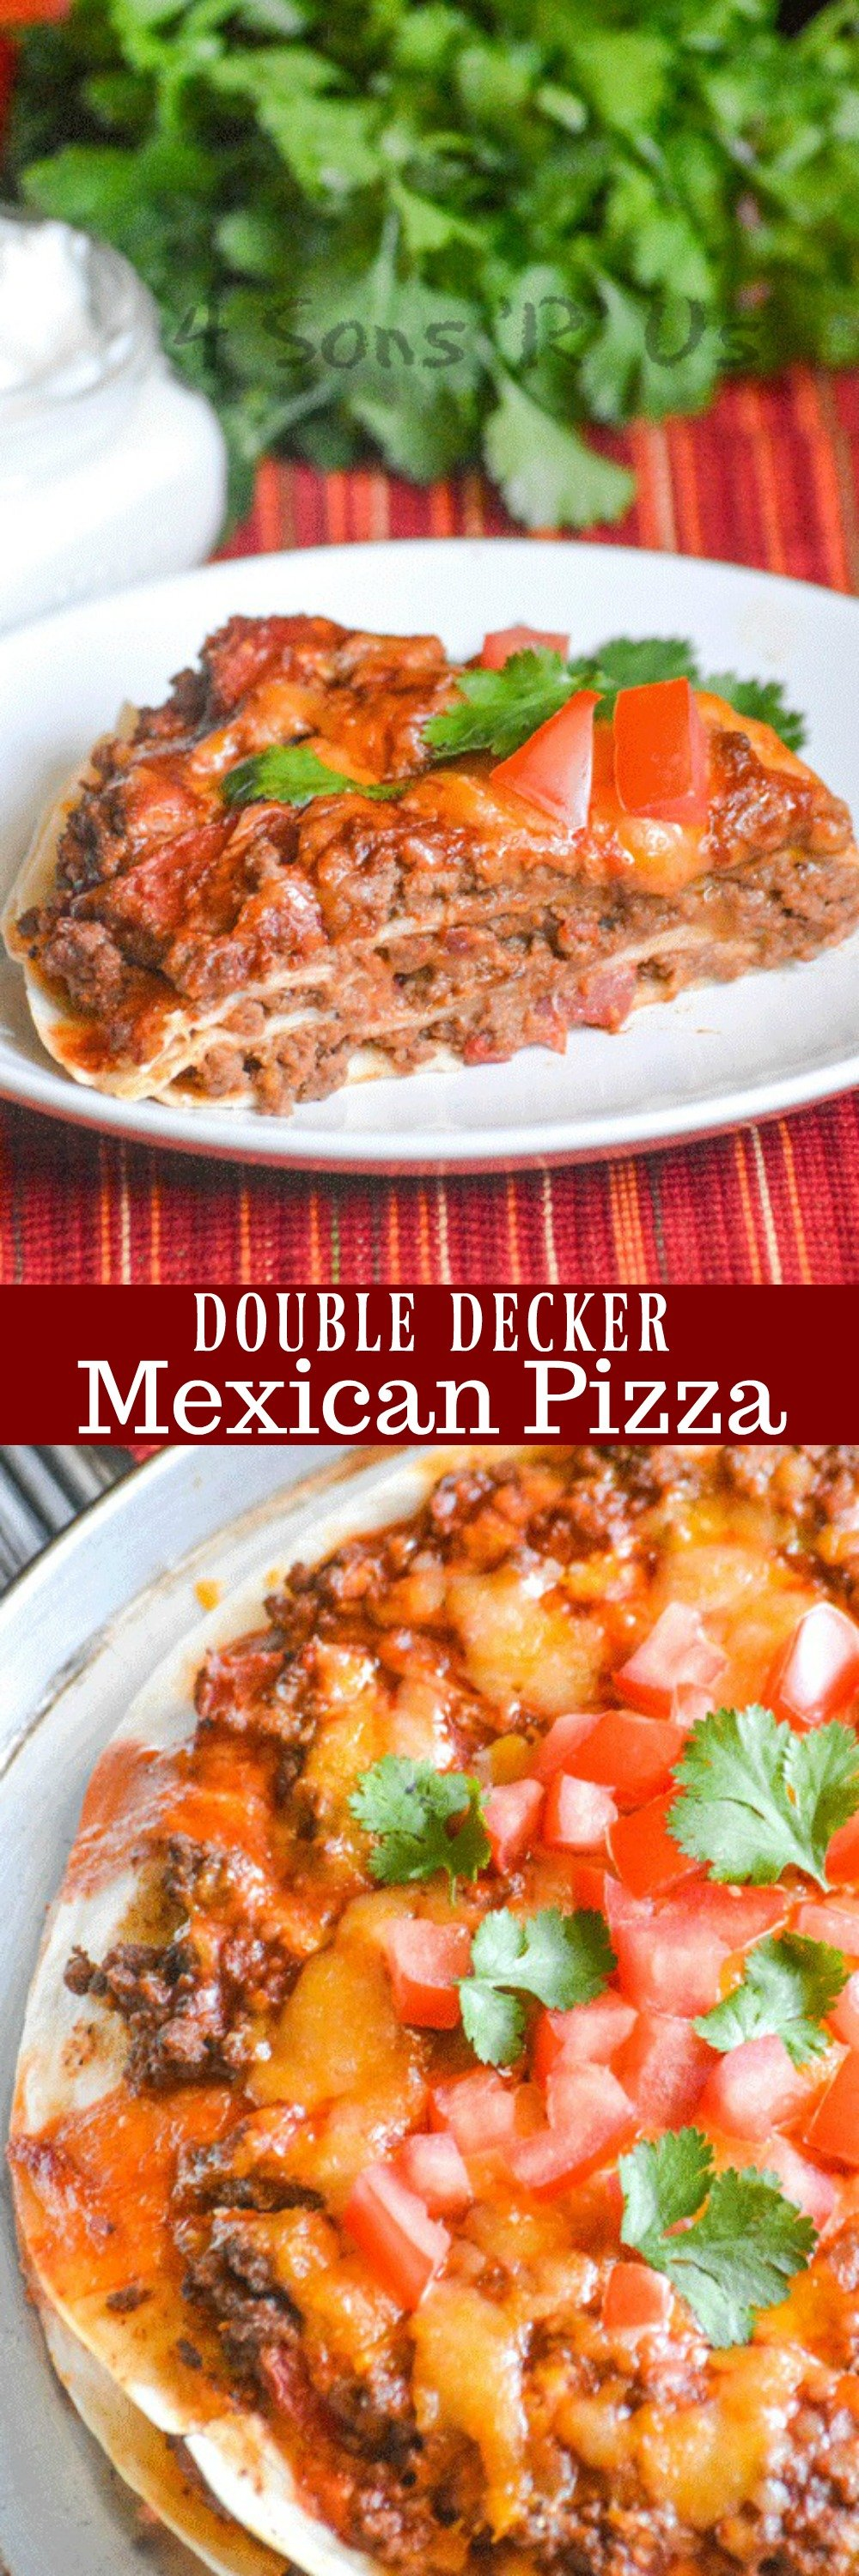 This Meaty Double Decker Mexican Pizza has everything you love about a traditional Mexican pizza from Taco Bell, but we've transformed it into a family meal. Layers of hearty seasoned ground beef & beans, cheeses, a layer of red enchilada sauce and chopped tomatoes and cilantro leaves makes it a perfect dinner to satisfy any craving.